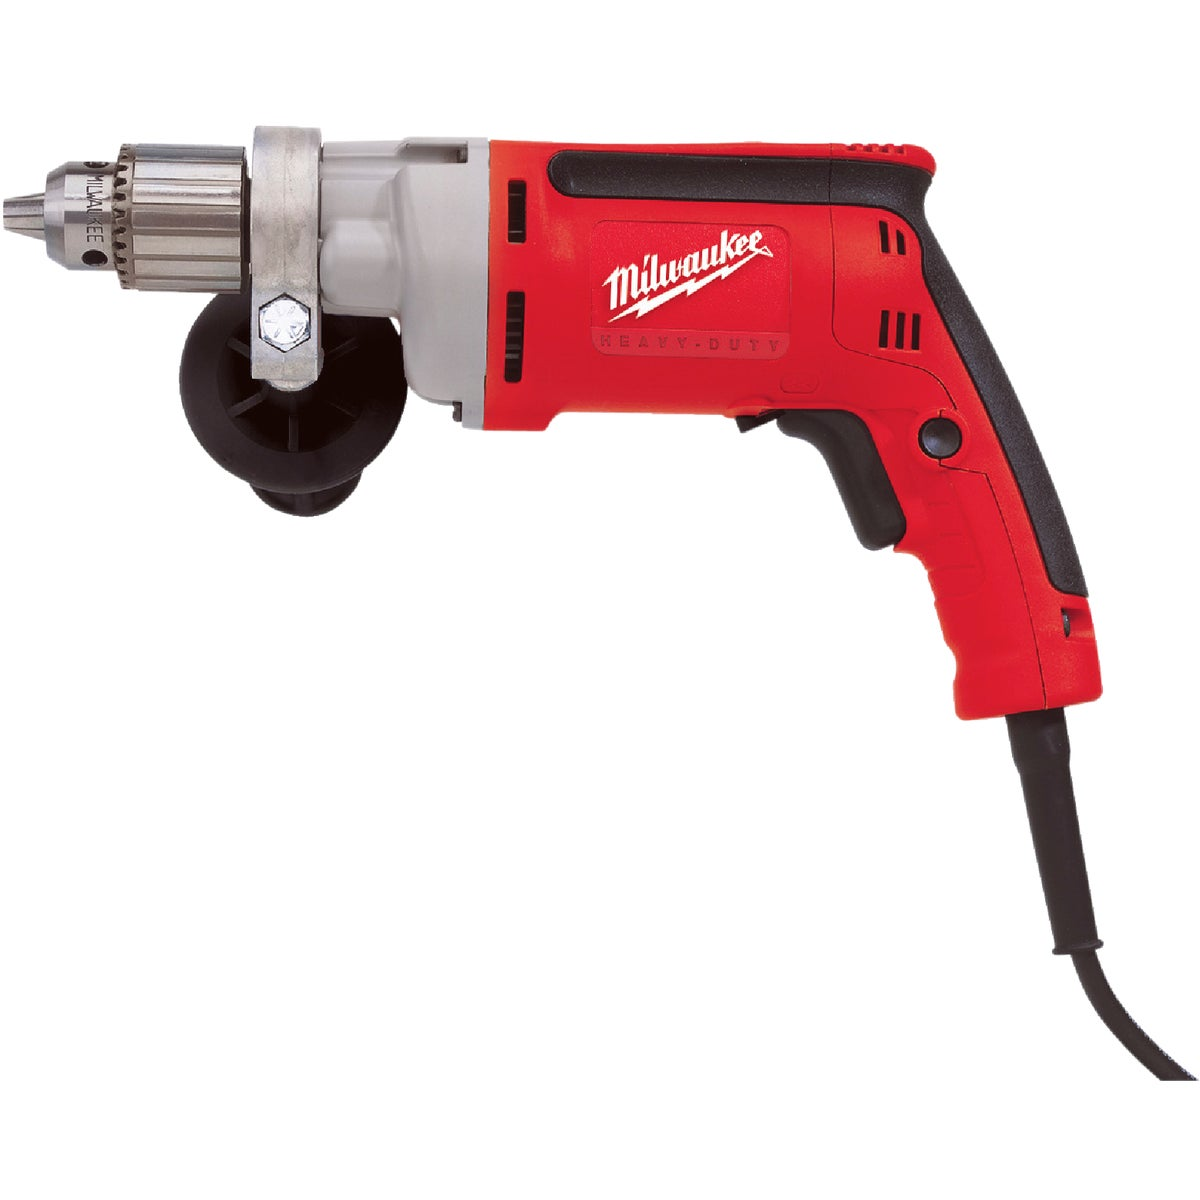 "1/2"" ELECTRIC DRILL"